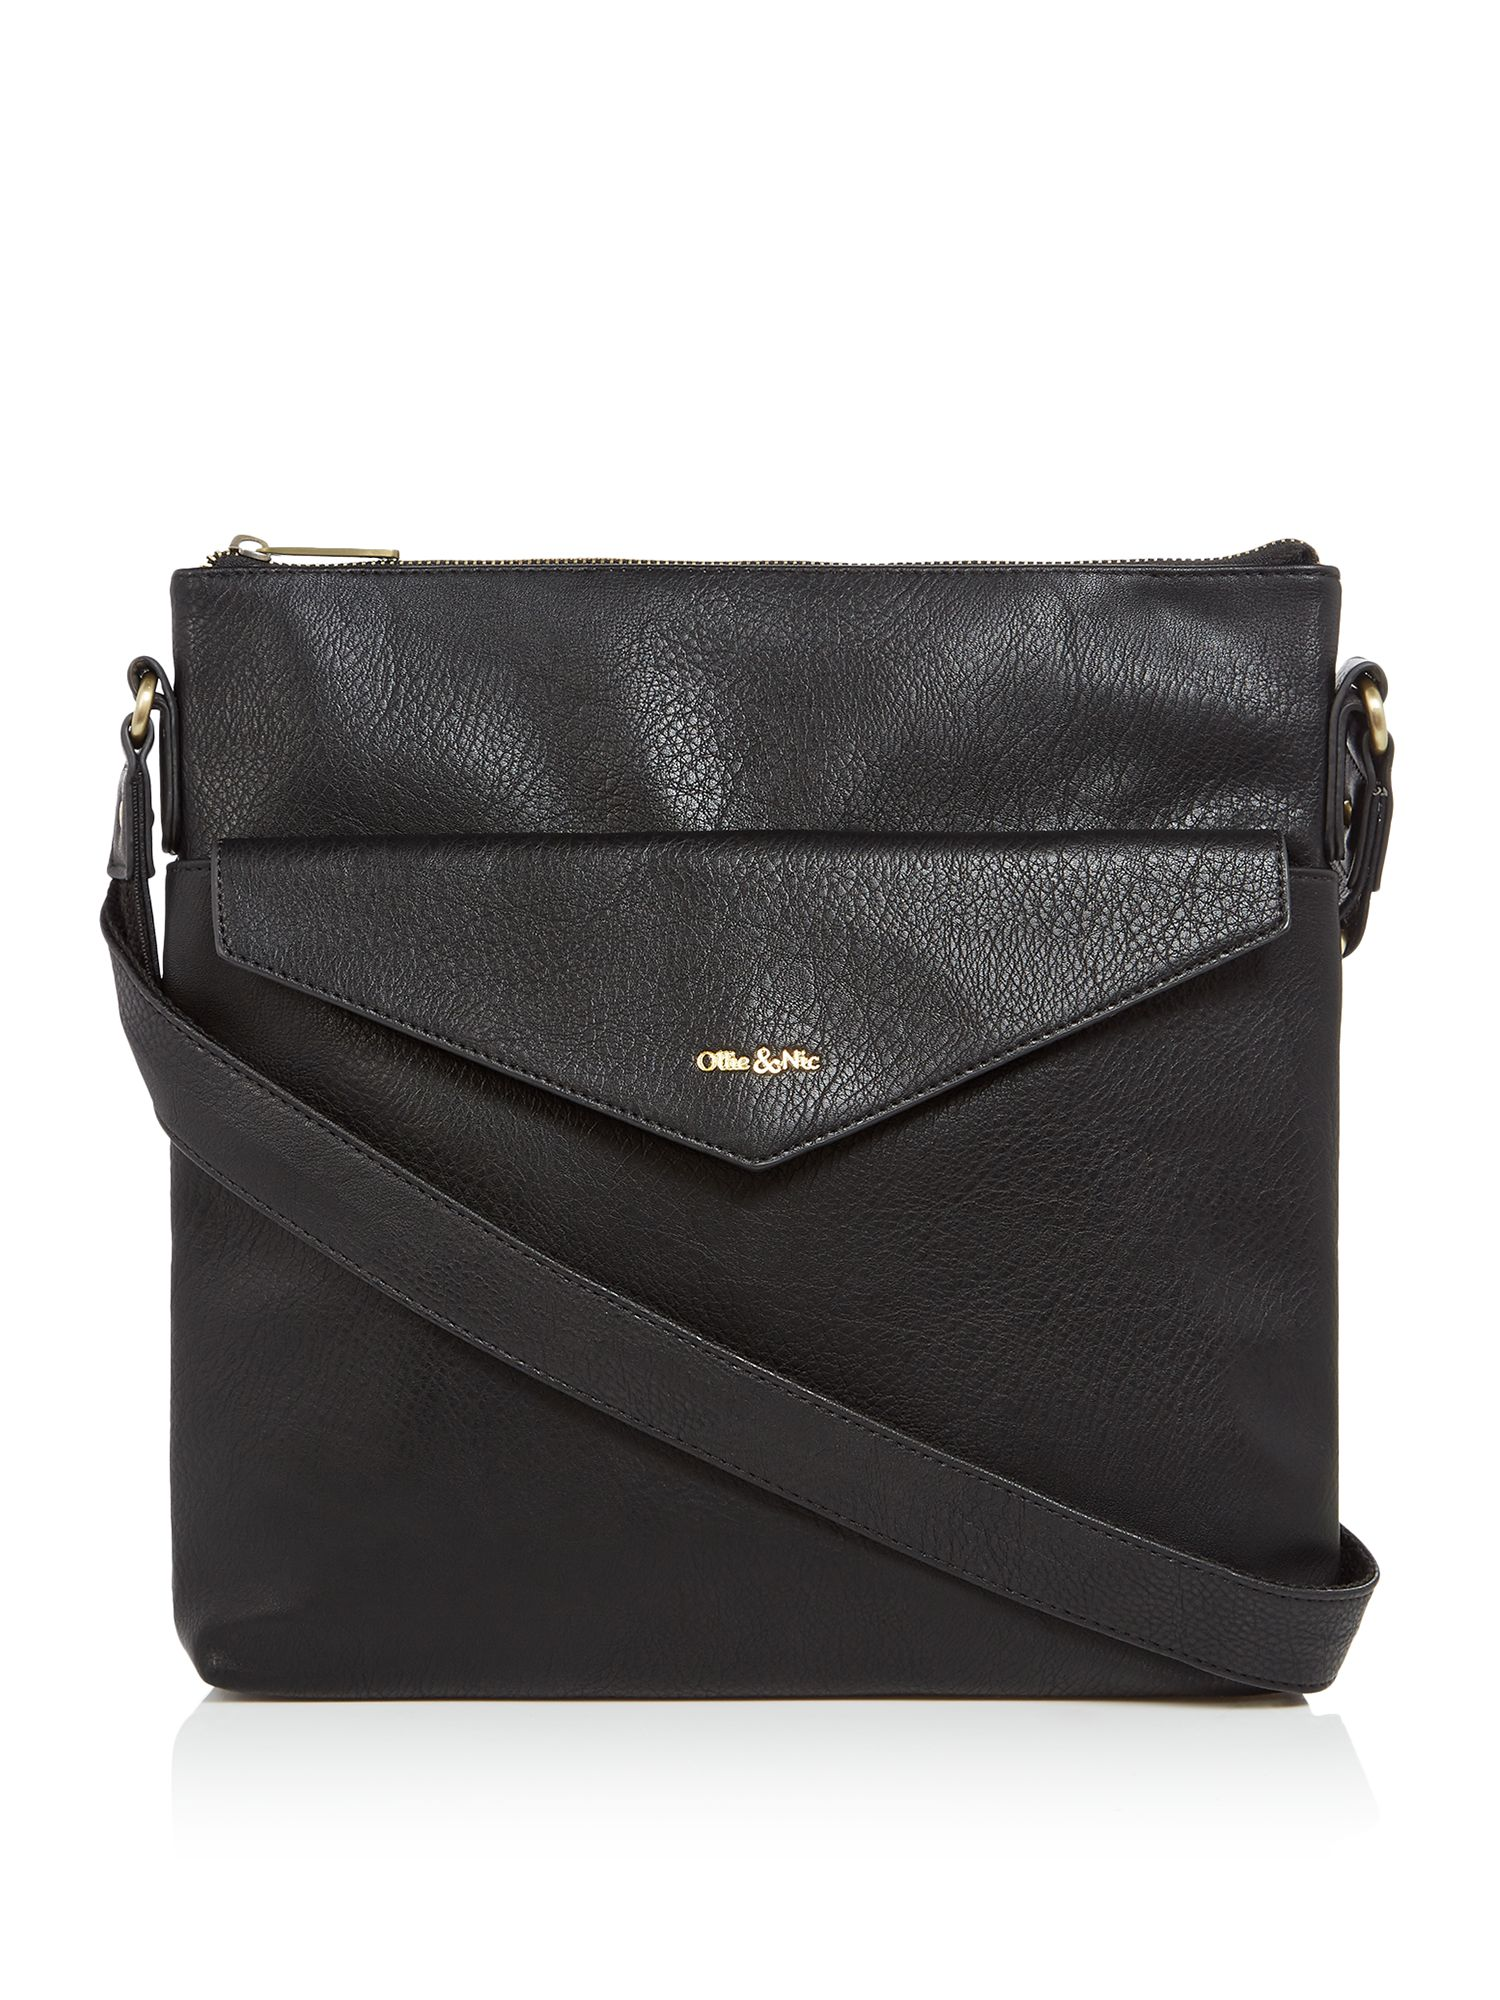 Ollie & Nic Eddy Large Crossbody, Black